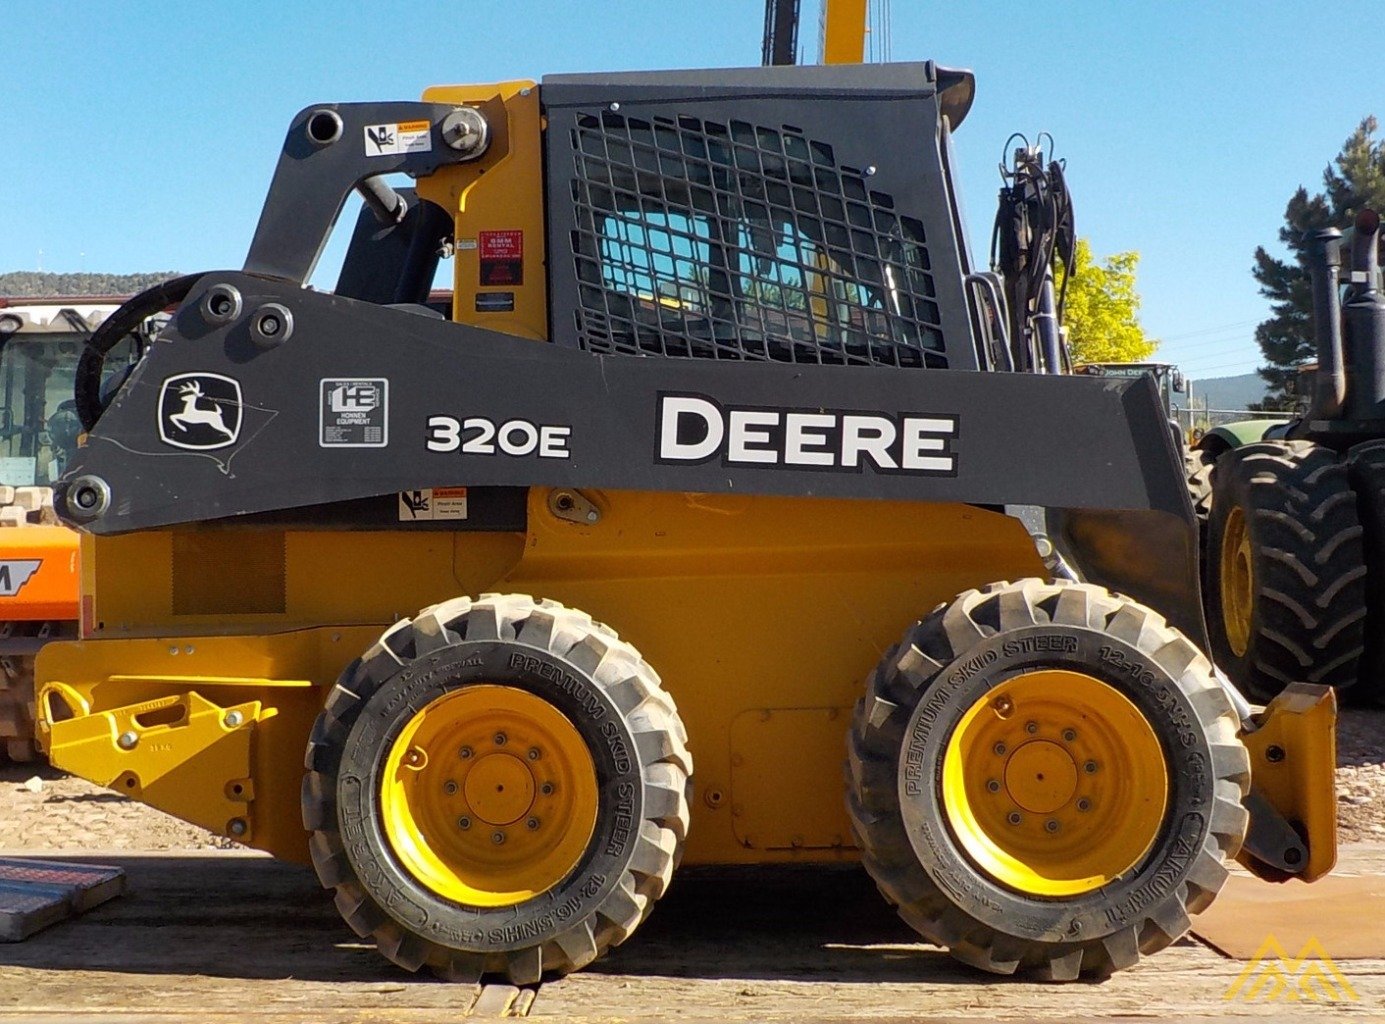 John Deere Skid Steer >> John Deere 320e Skid Steer Loader For Sale Loaders Earthmoving